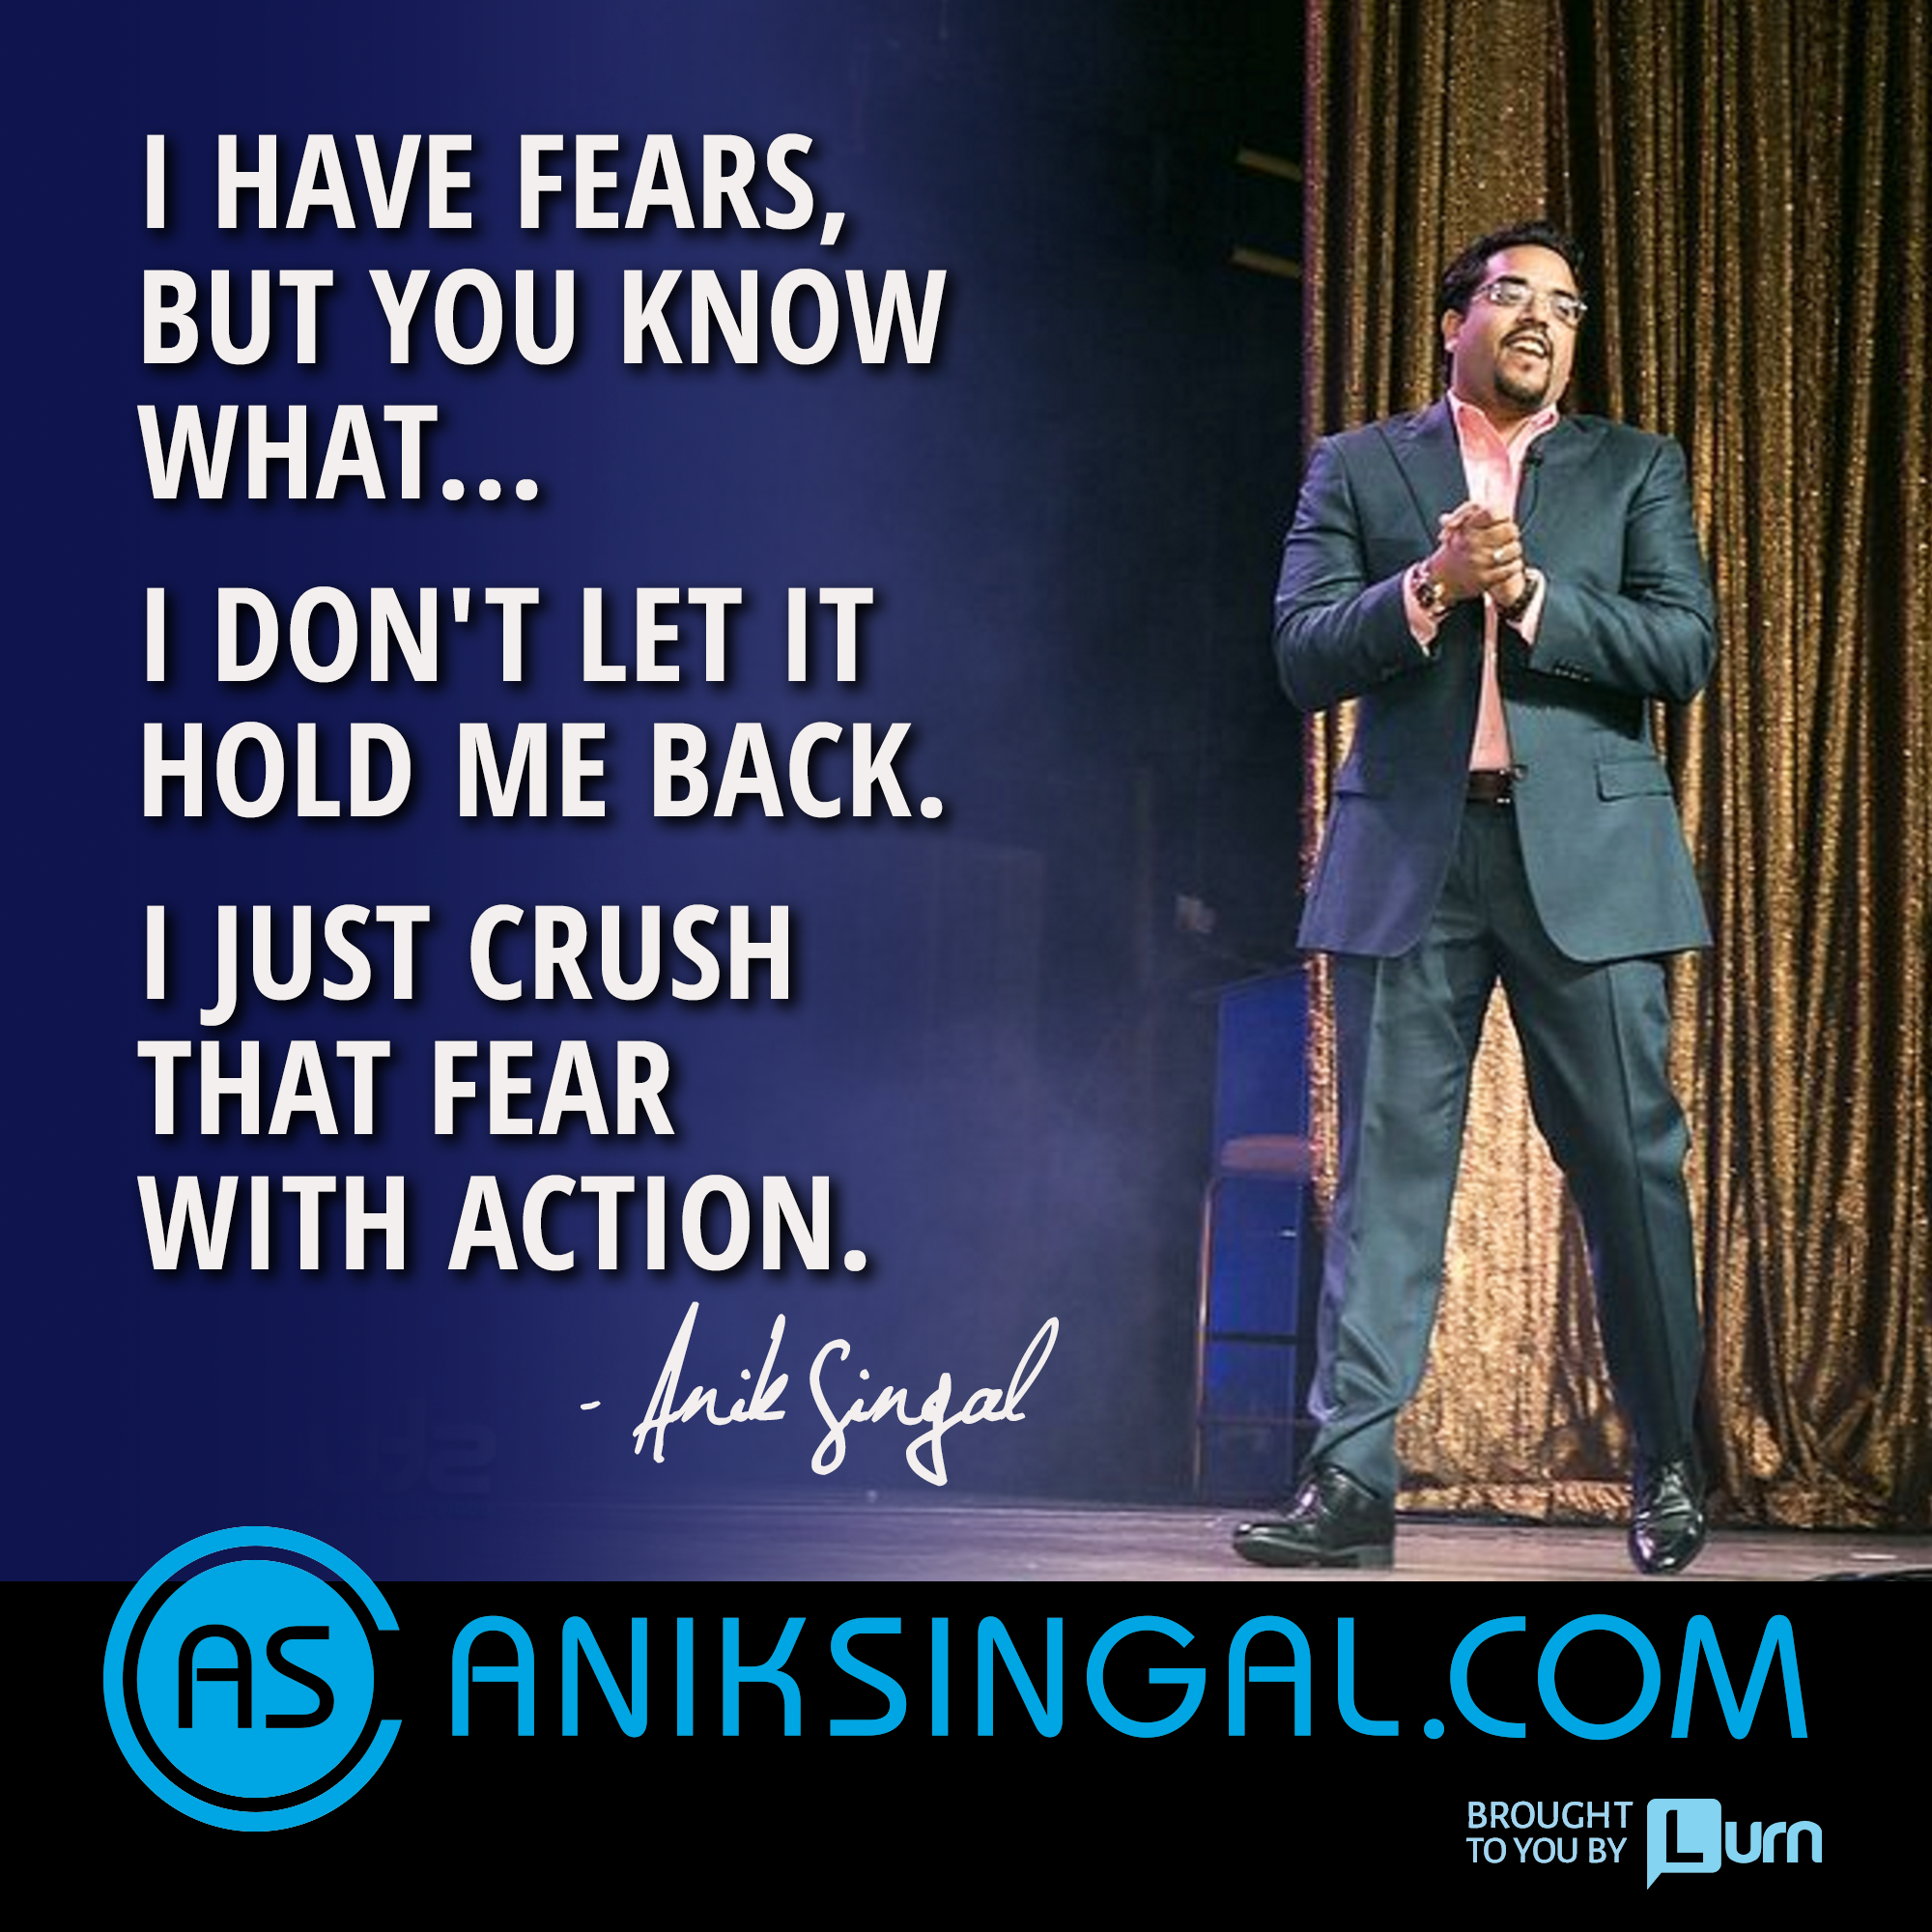 I use ACTION to crush my fears